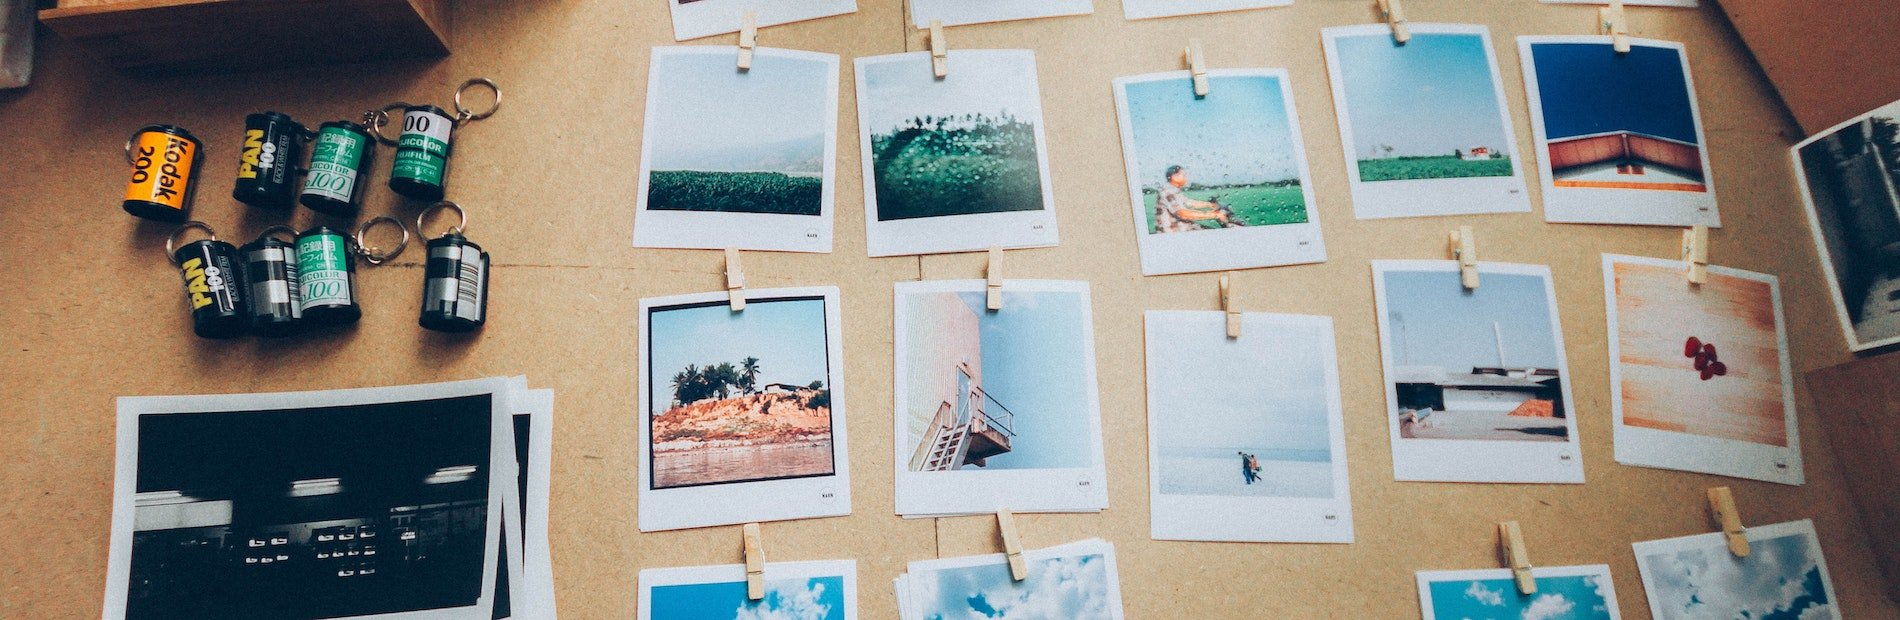 photographs pinned on board